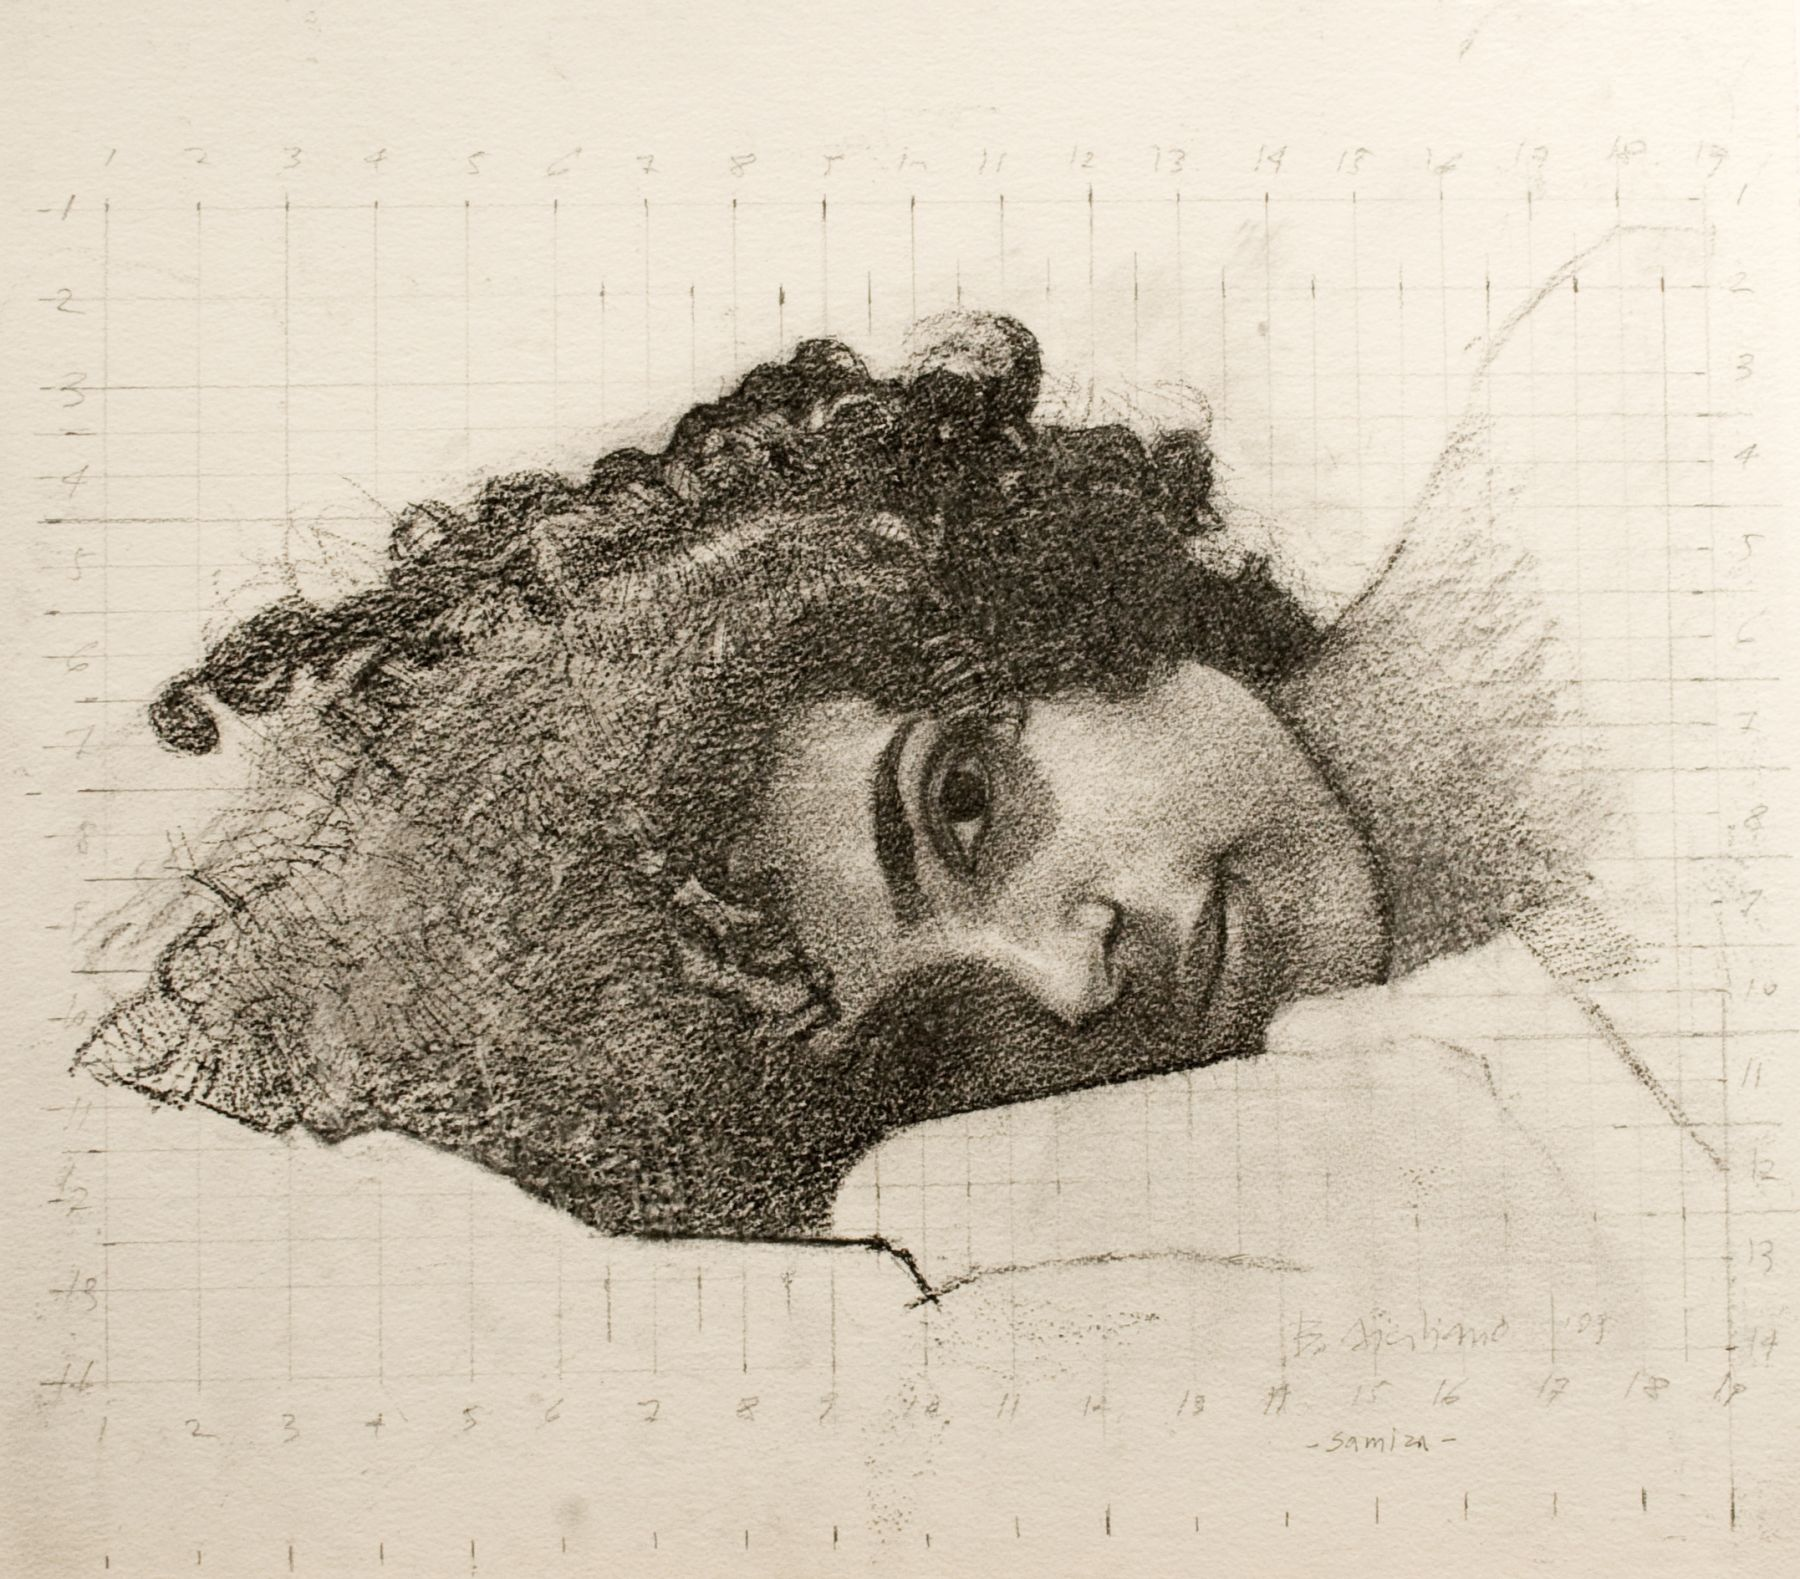 Bernardo Siciliano, Samira (SOLD), 2009, graphite on paper, 22 1/2 x 24 inches